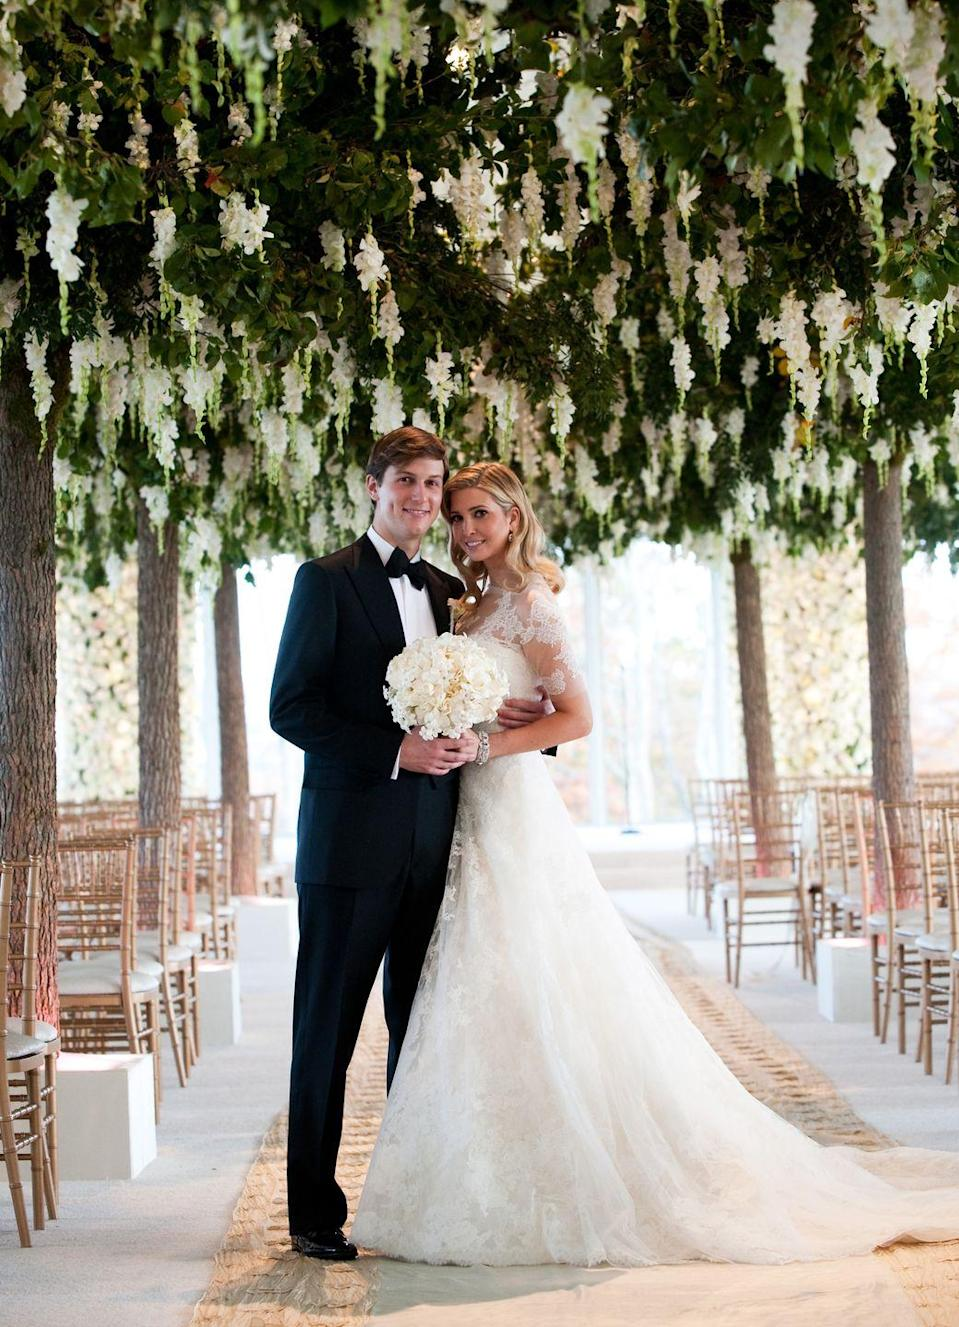 "<p>Put together in just three months, Ivanka Trump's $1 million 2009 wedding was at the Trump National Golf Club in Bedminster, NJ. The <a href=""https://www.brides.com/story/ivanka-trump-jared-kushner-wedding-photos"" rel=""nofollow noopener"" target=""_blank"" data-ylk=""slk:13-layered cake"" class=""link rapid-noclick-resp"">13-layered cake</a> guests ate at the reception is estimated to have cost $70,000 alone. </p>"